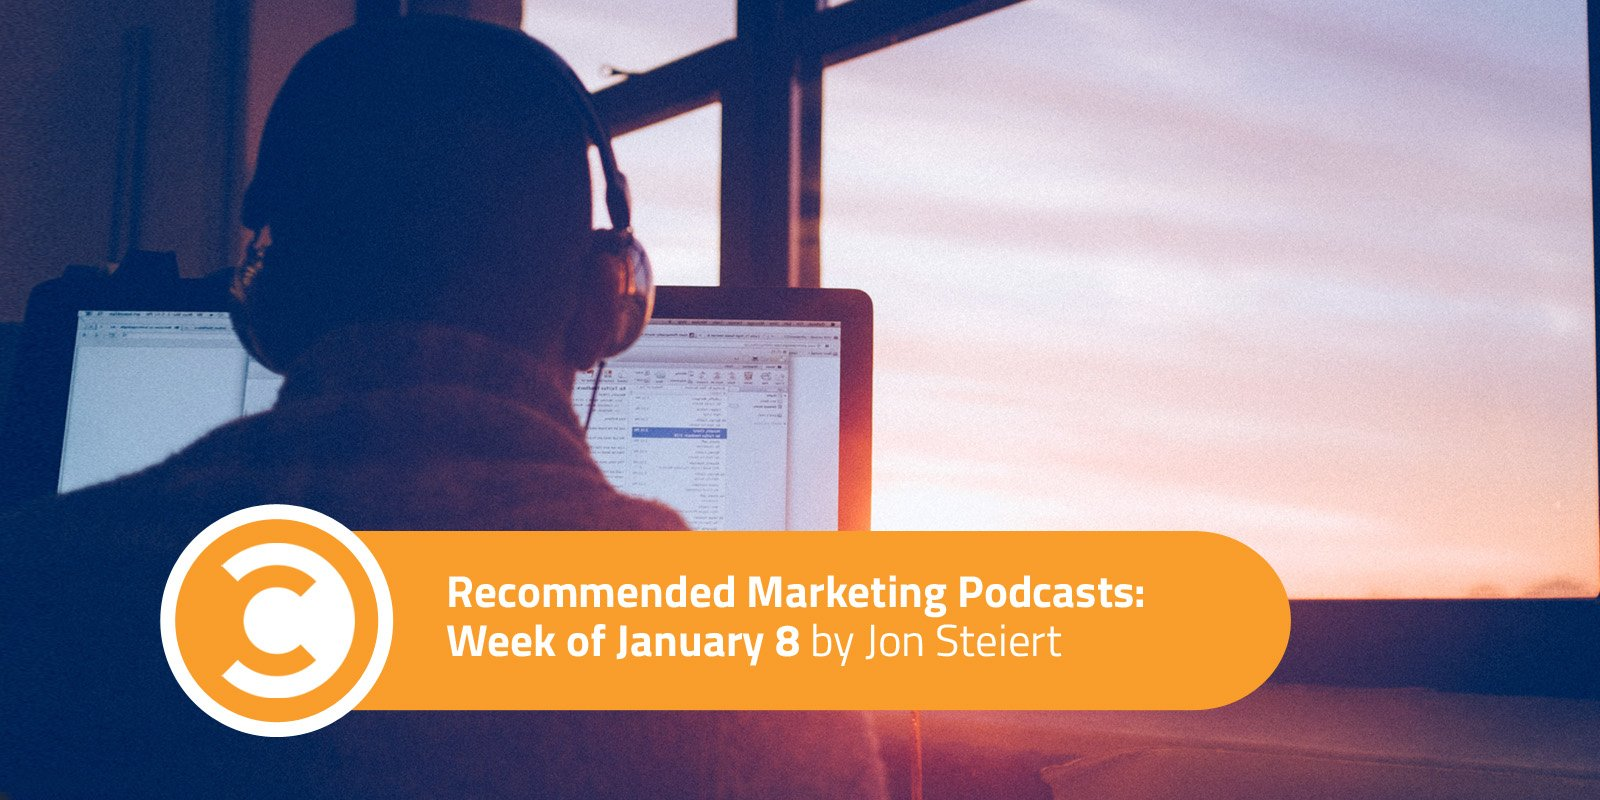 Recommended Marketing Podcasts Week of January 8